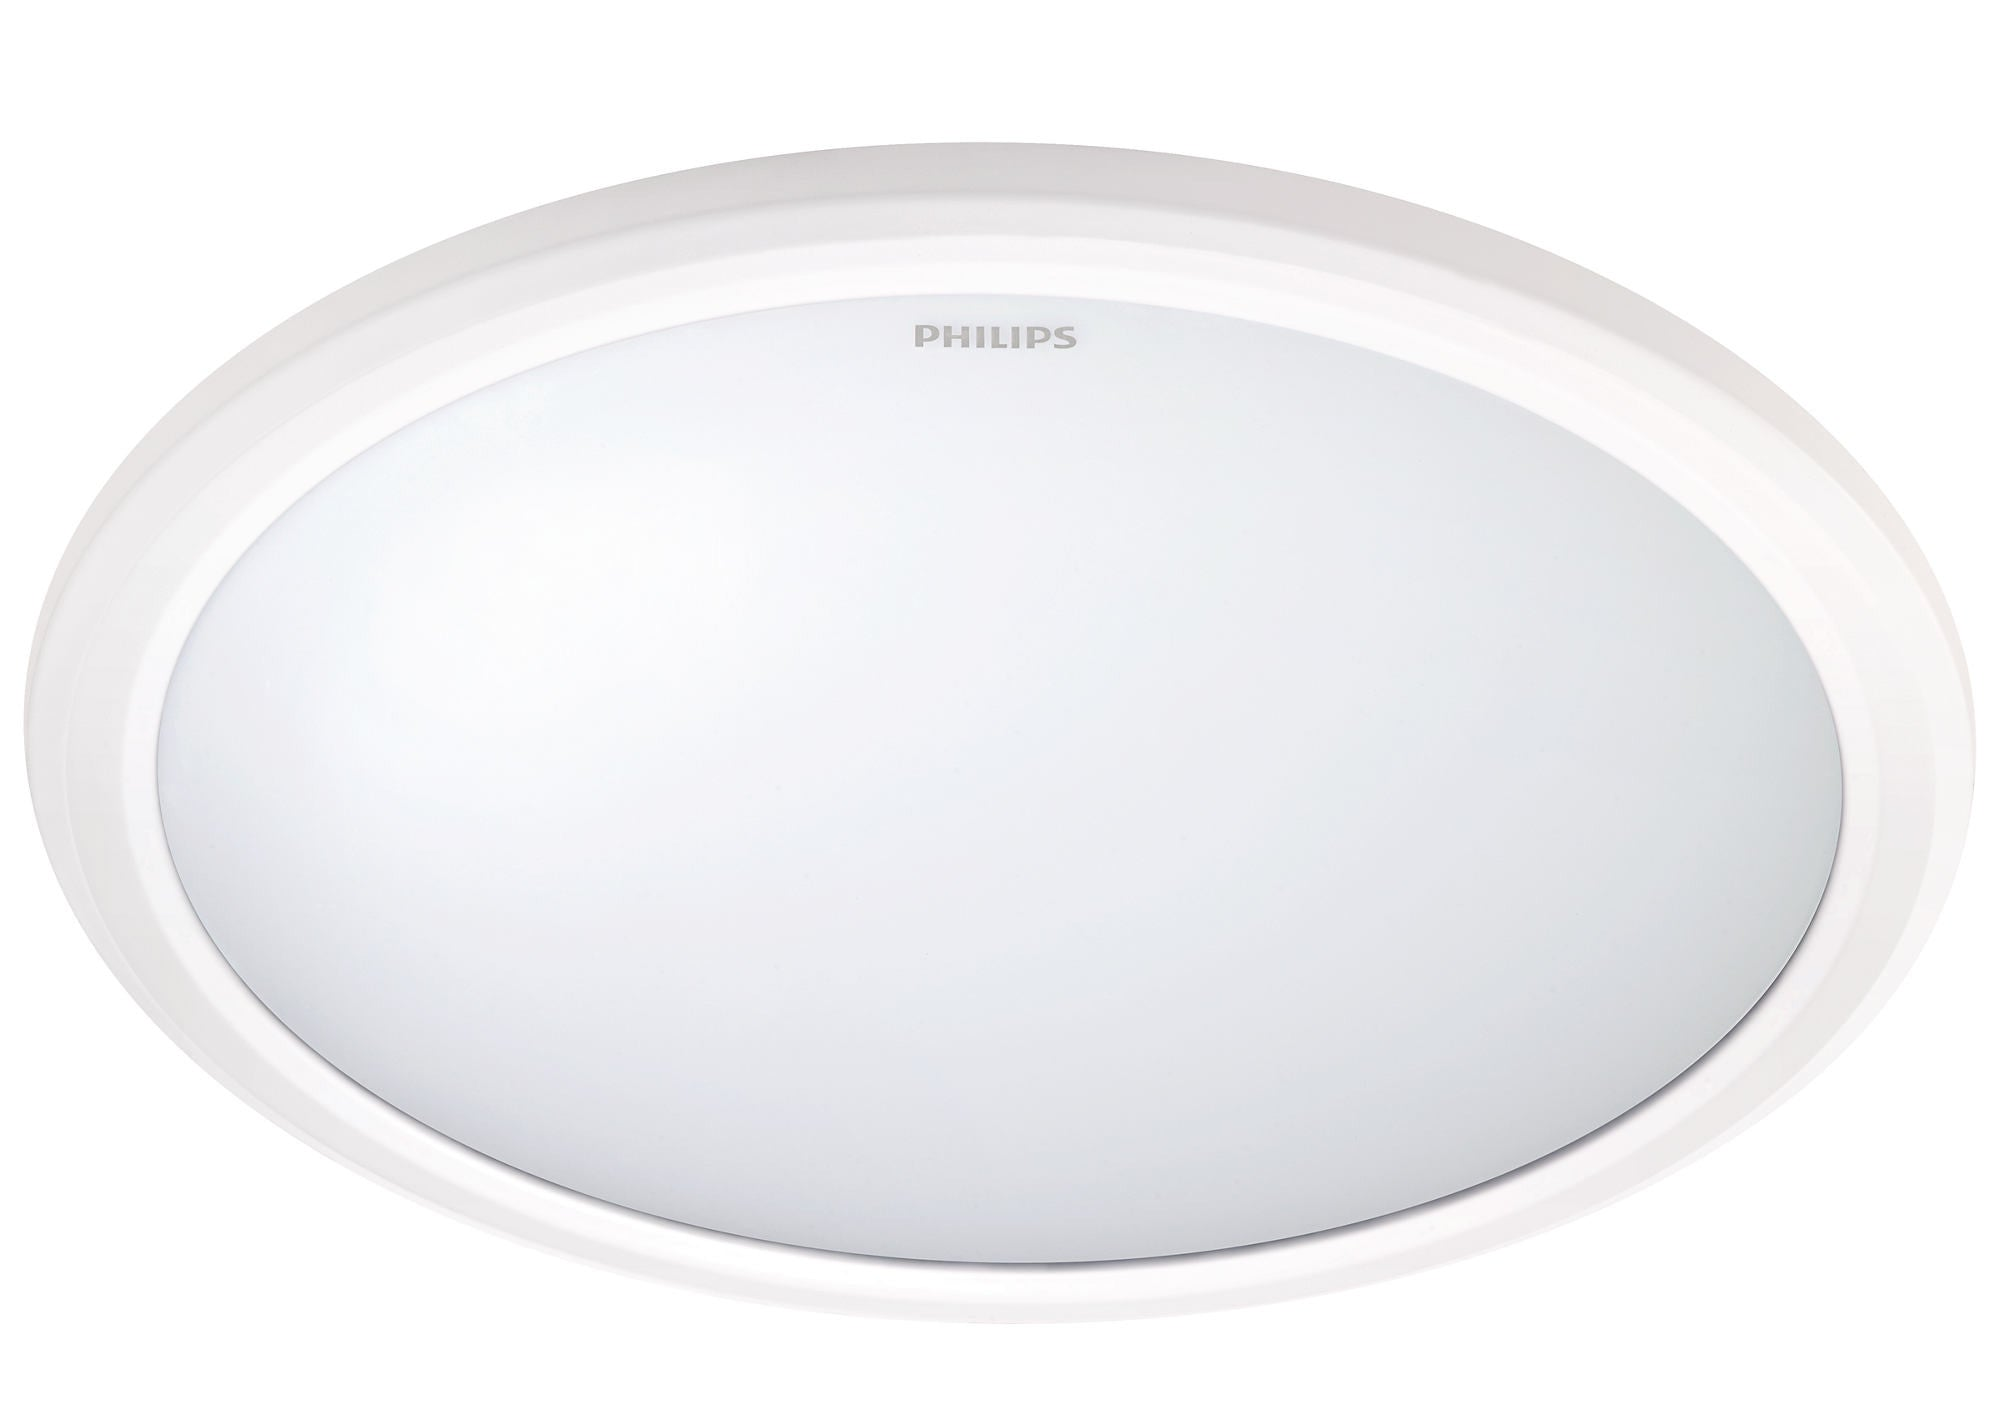 Philips LED Ceiling Light 12W 6500K Cool Daylight Waterproof IP65